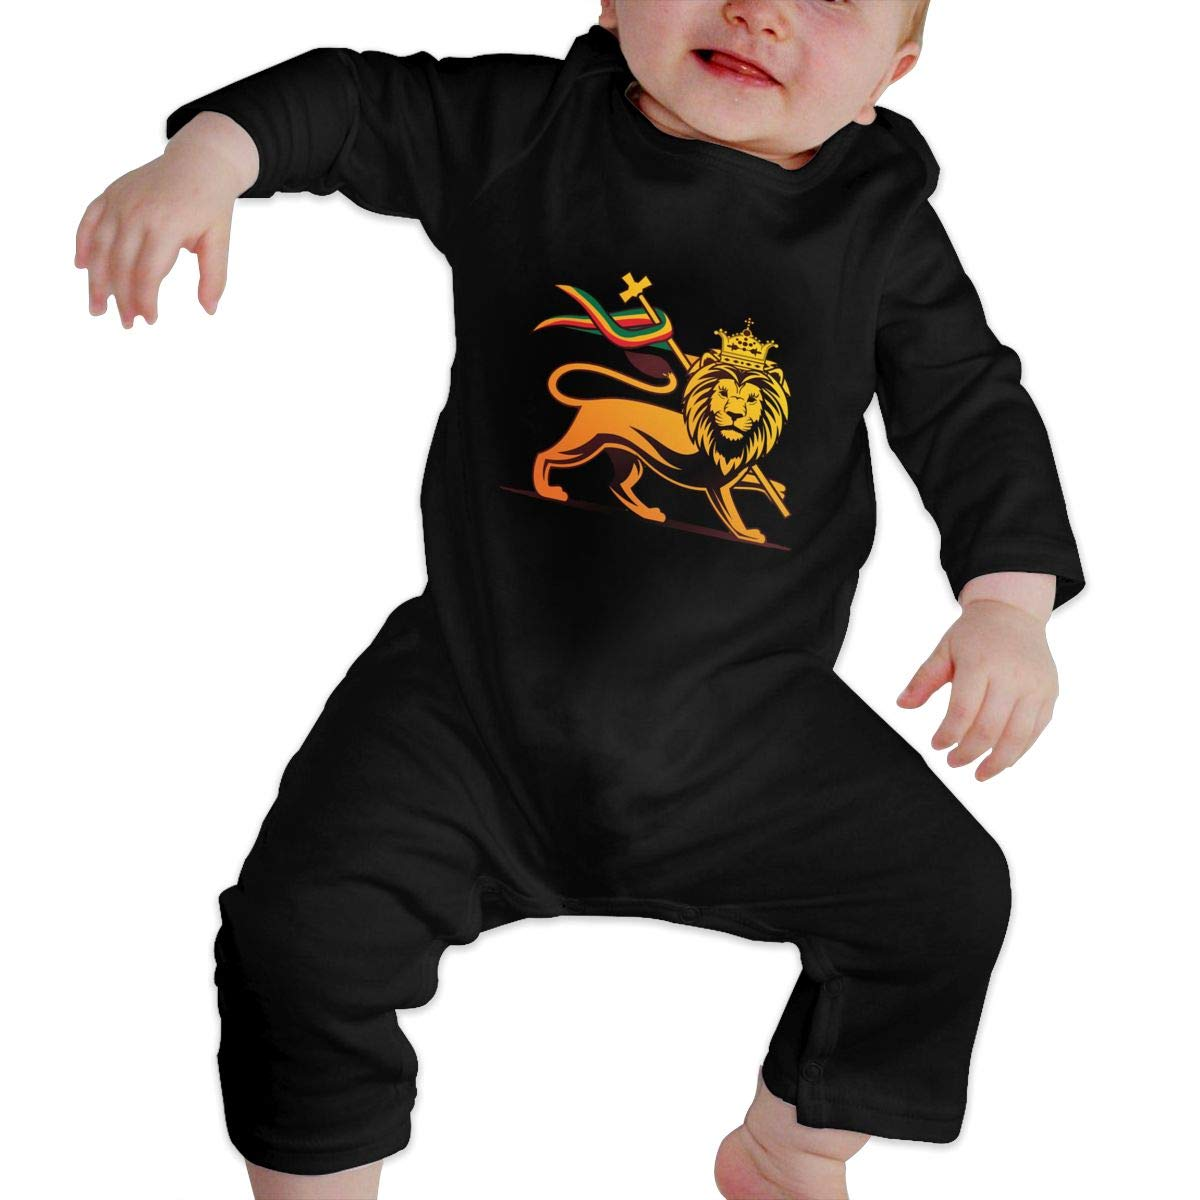 Rasta Lion Romper Jumpsuit Long Sleeve Bodysuit Overalls Outfits Clothes for Newborn Baby Boy Girl